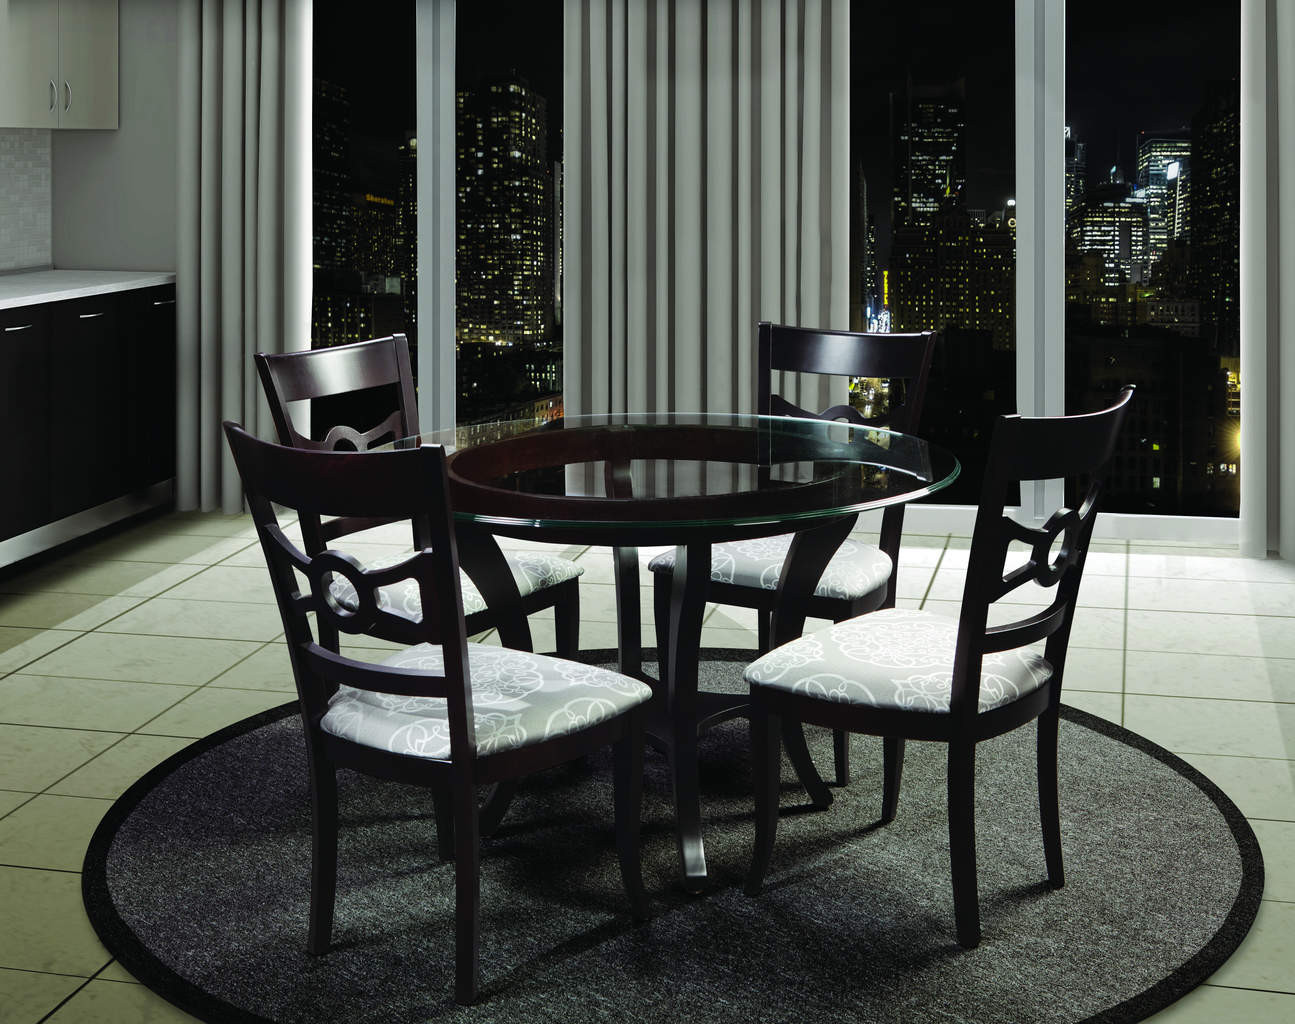 Best ideas about Dining Room Tables . Save or Pin Dining Room Sets and Dining Room Tables & Chairs Now.